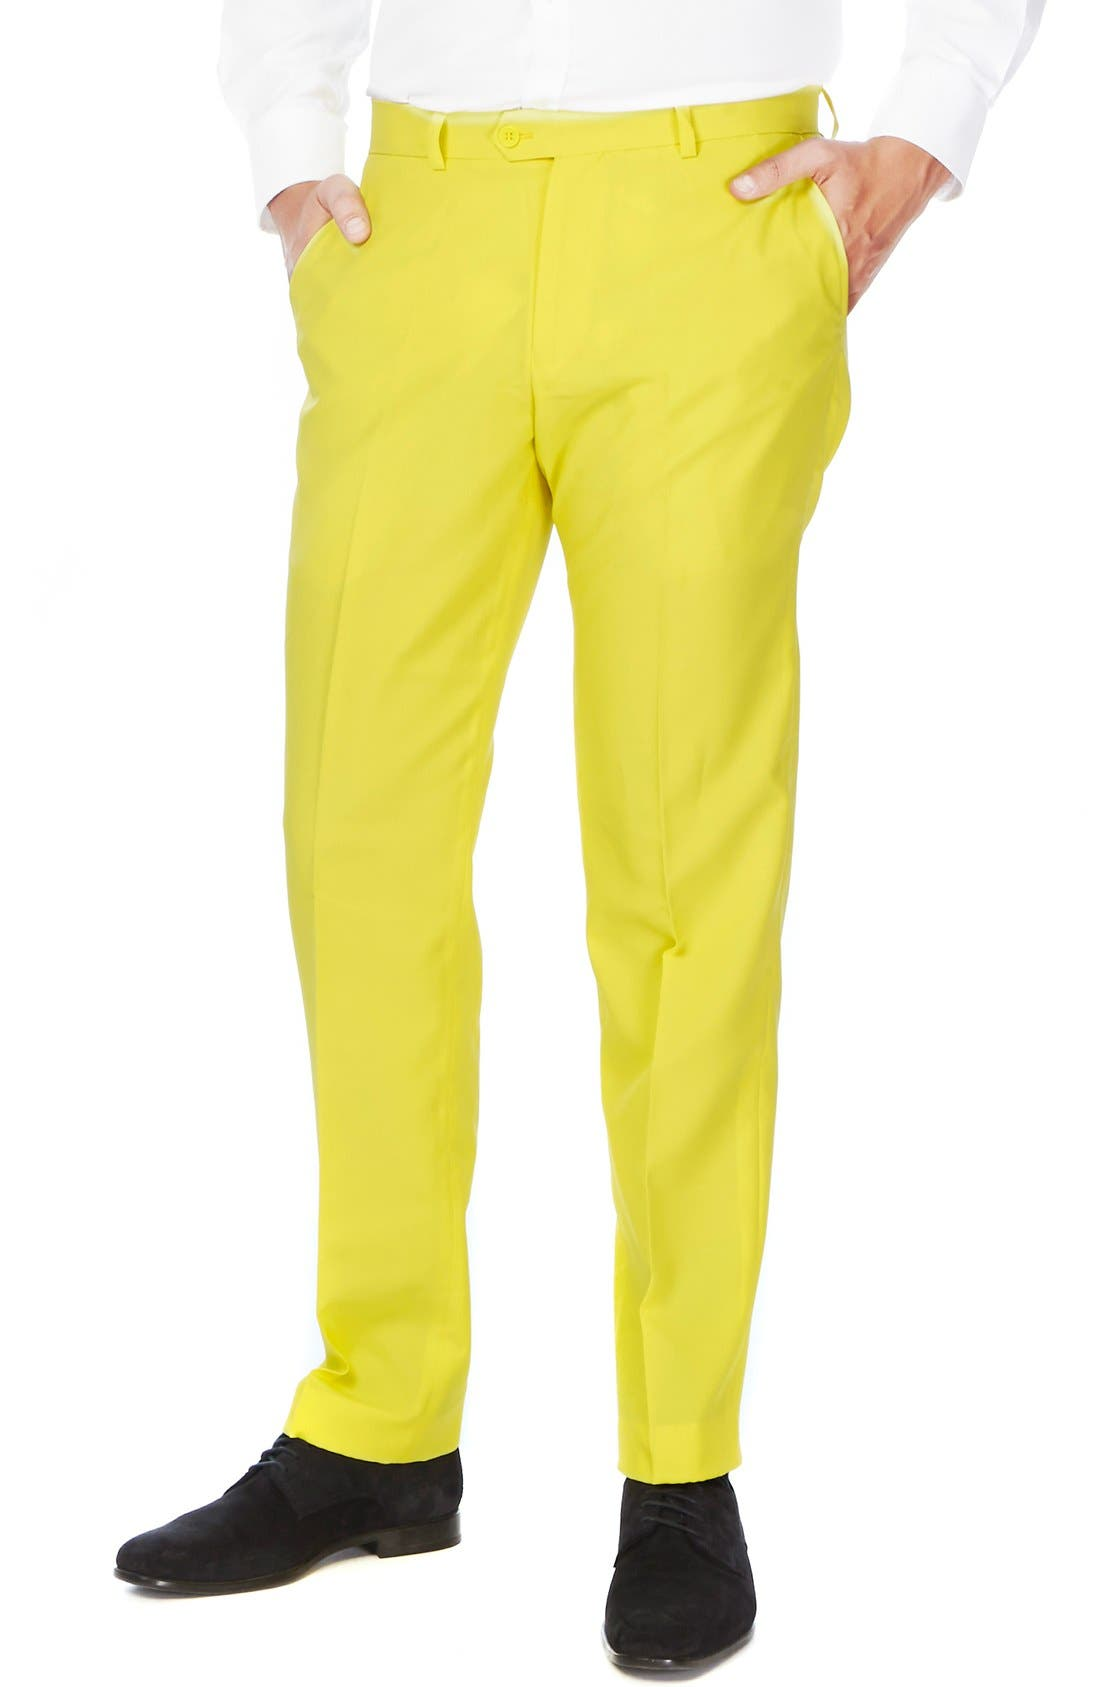 'Yellow Fellow' Trim Fit Two-Piece Suit with Tie,                             Alternate thumbnail 3, color,                             700